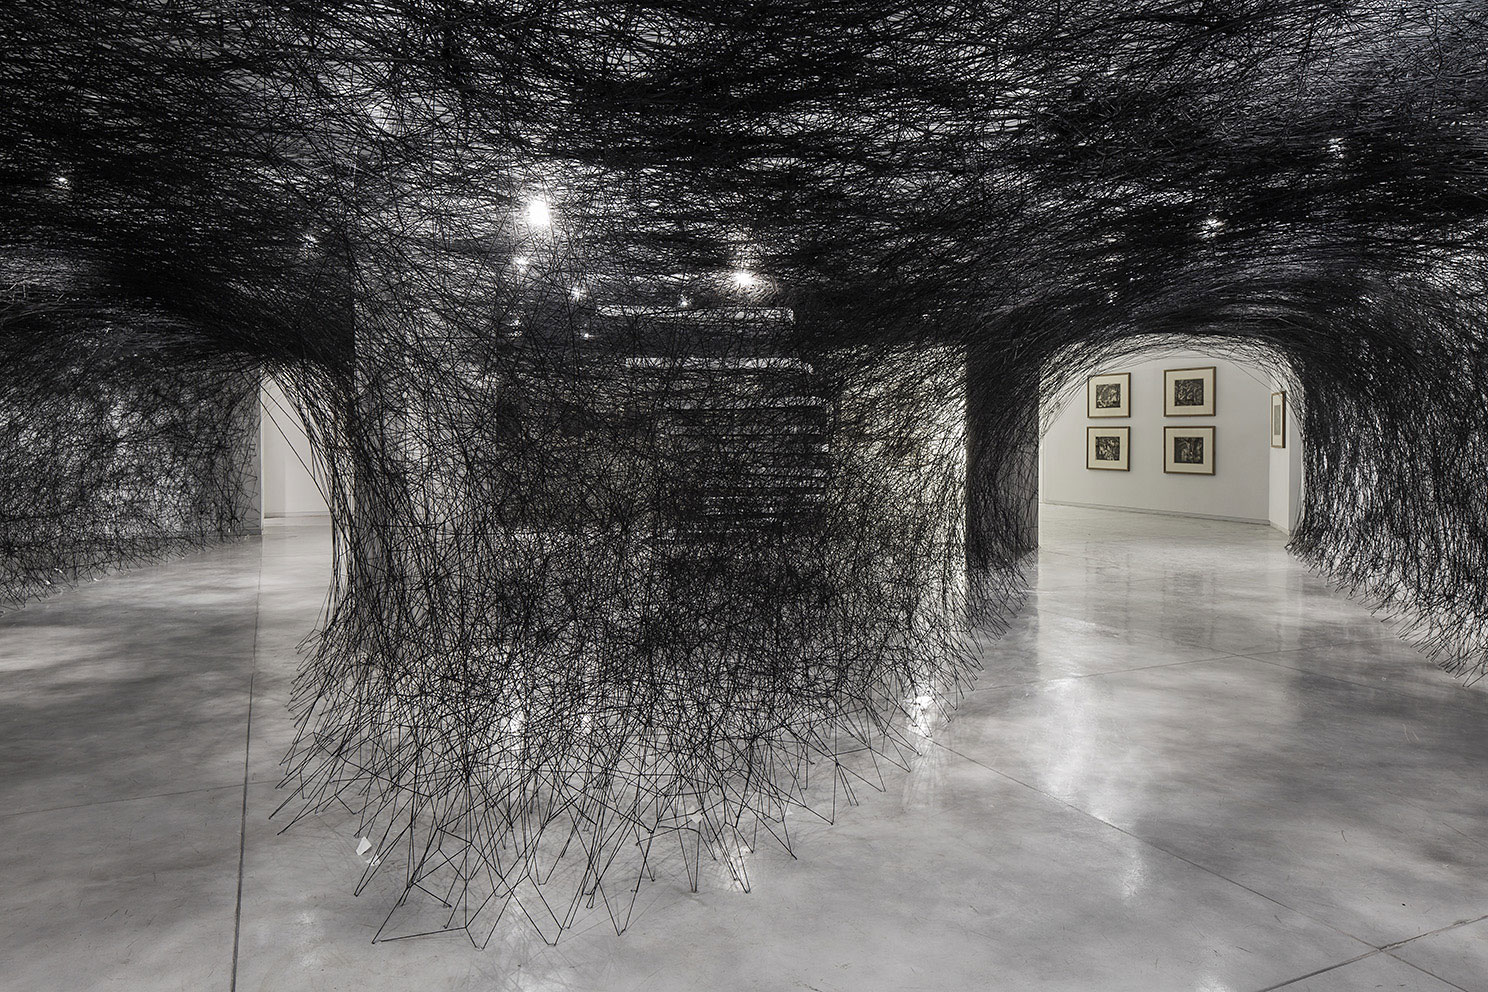 Installation-Photograph-1,-Piranesi-Shiota--Prisons-of-the-Imagination-at-the-Tel-Aviv-Museum-of-Art